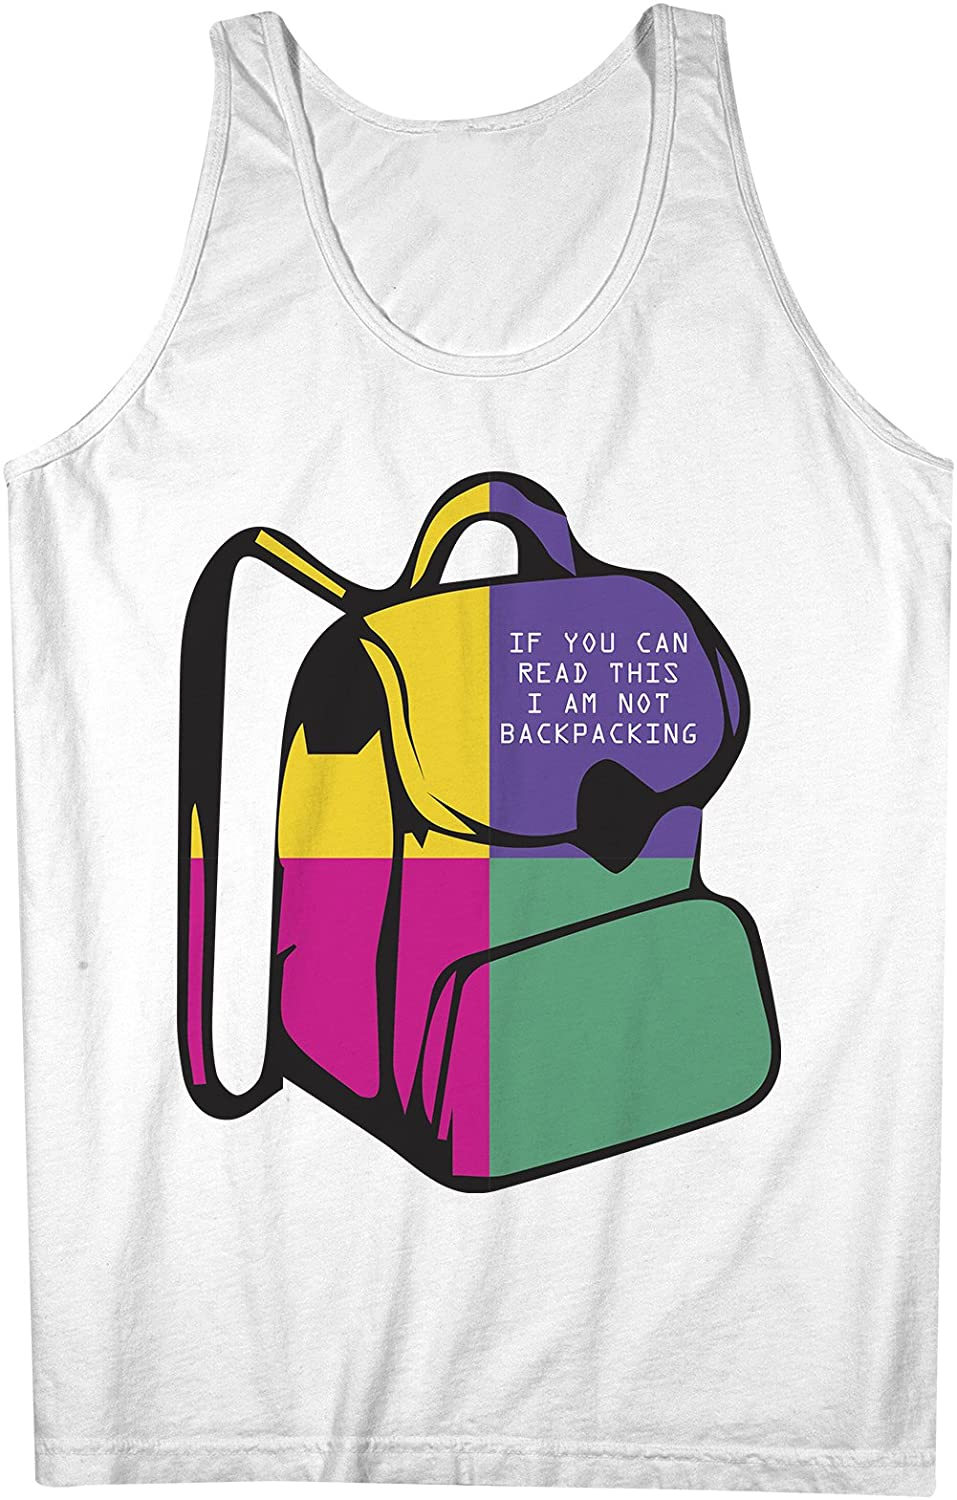 If You Are Reading This I Am Not Backpacking おかしいです Traveling 男性用 Tank Top Sleeveless Shirt